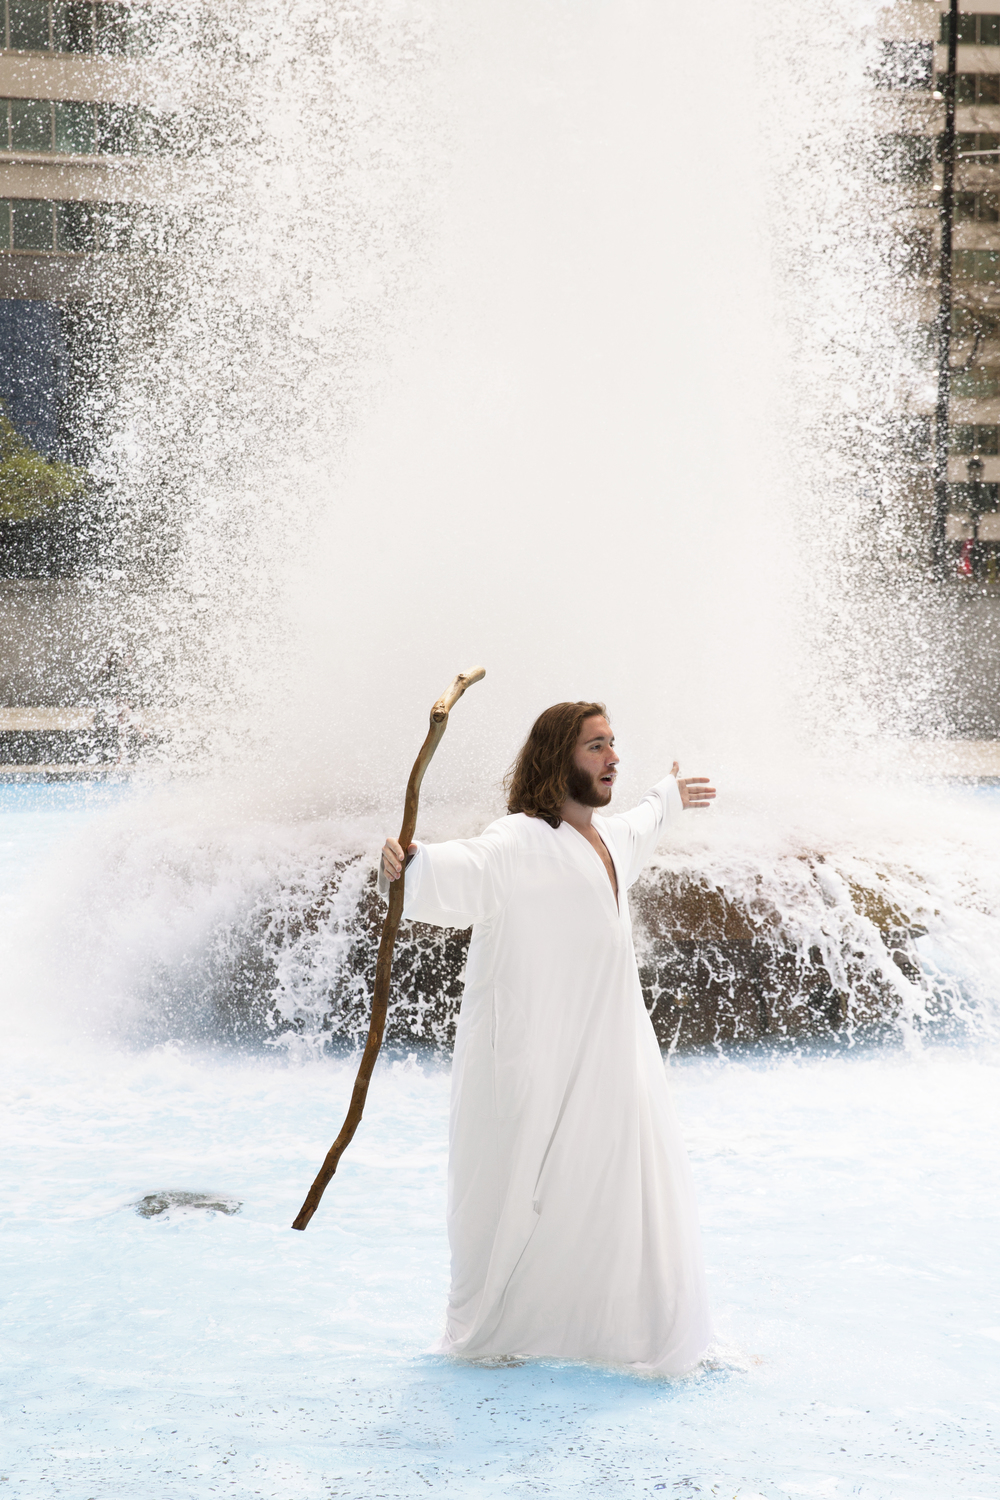 """Michael """"Philly Jesus"""" Grant demonstrates his (in)ability to walk on water in Philadelphia's Love Park fountain on April 17, 2015."""